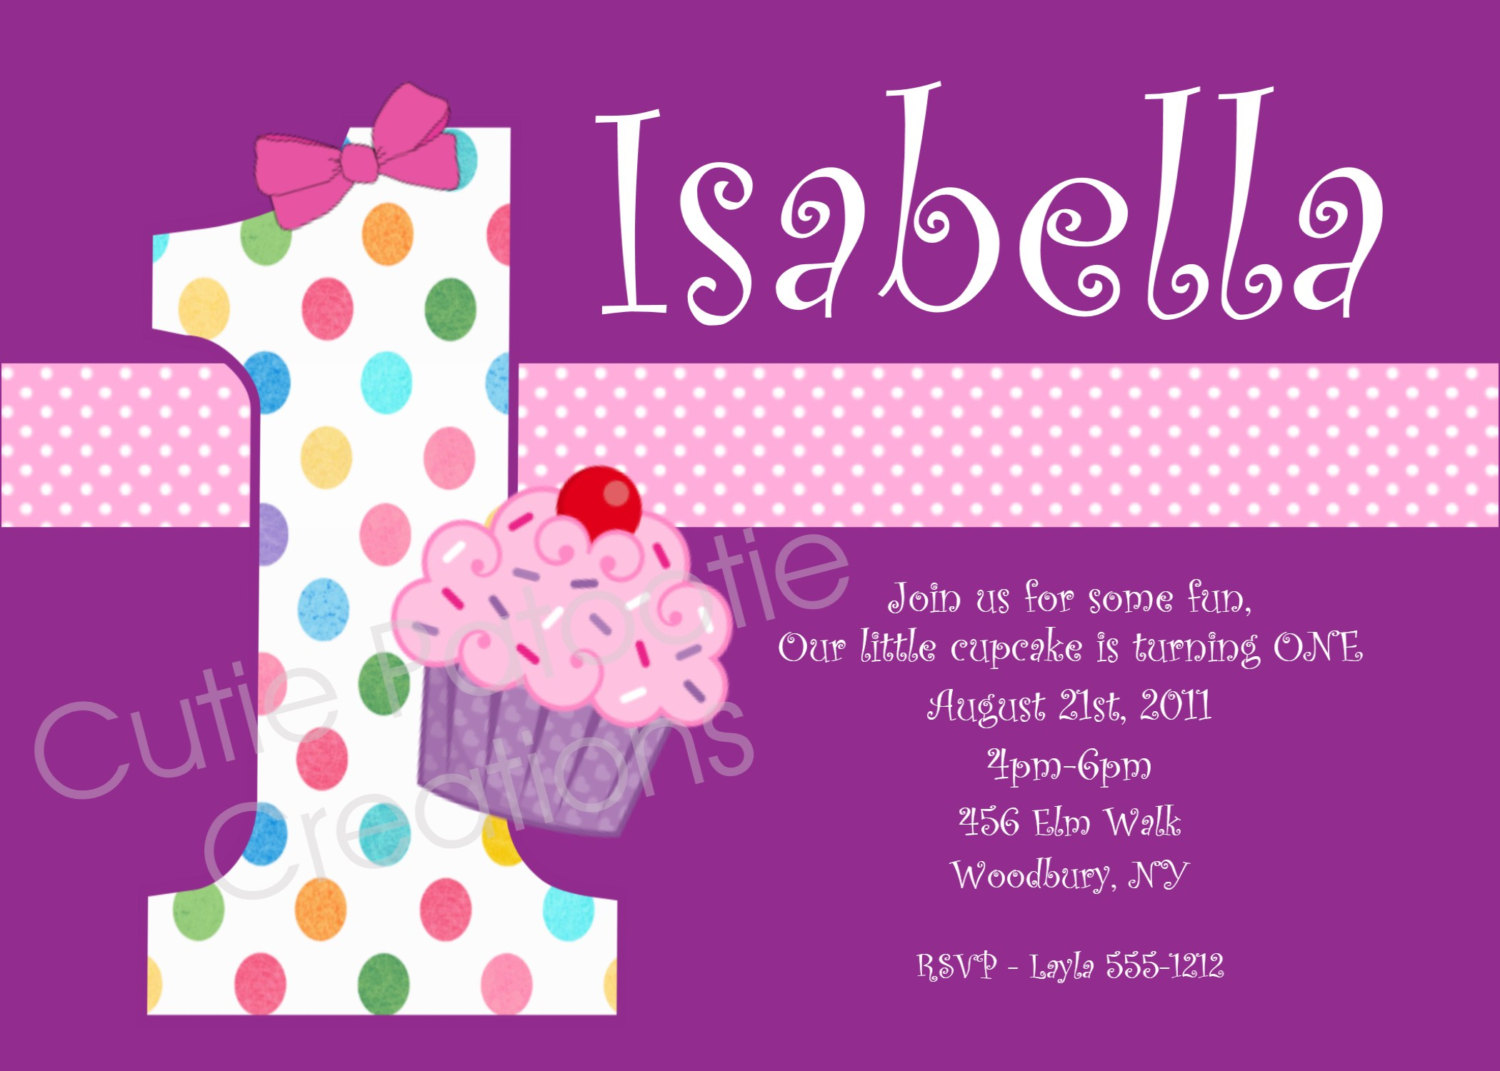 cupcake birthday invitation template ; 0a9f09080e171fb6a9704a828f7a3190